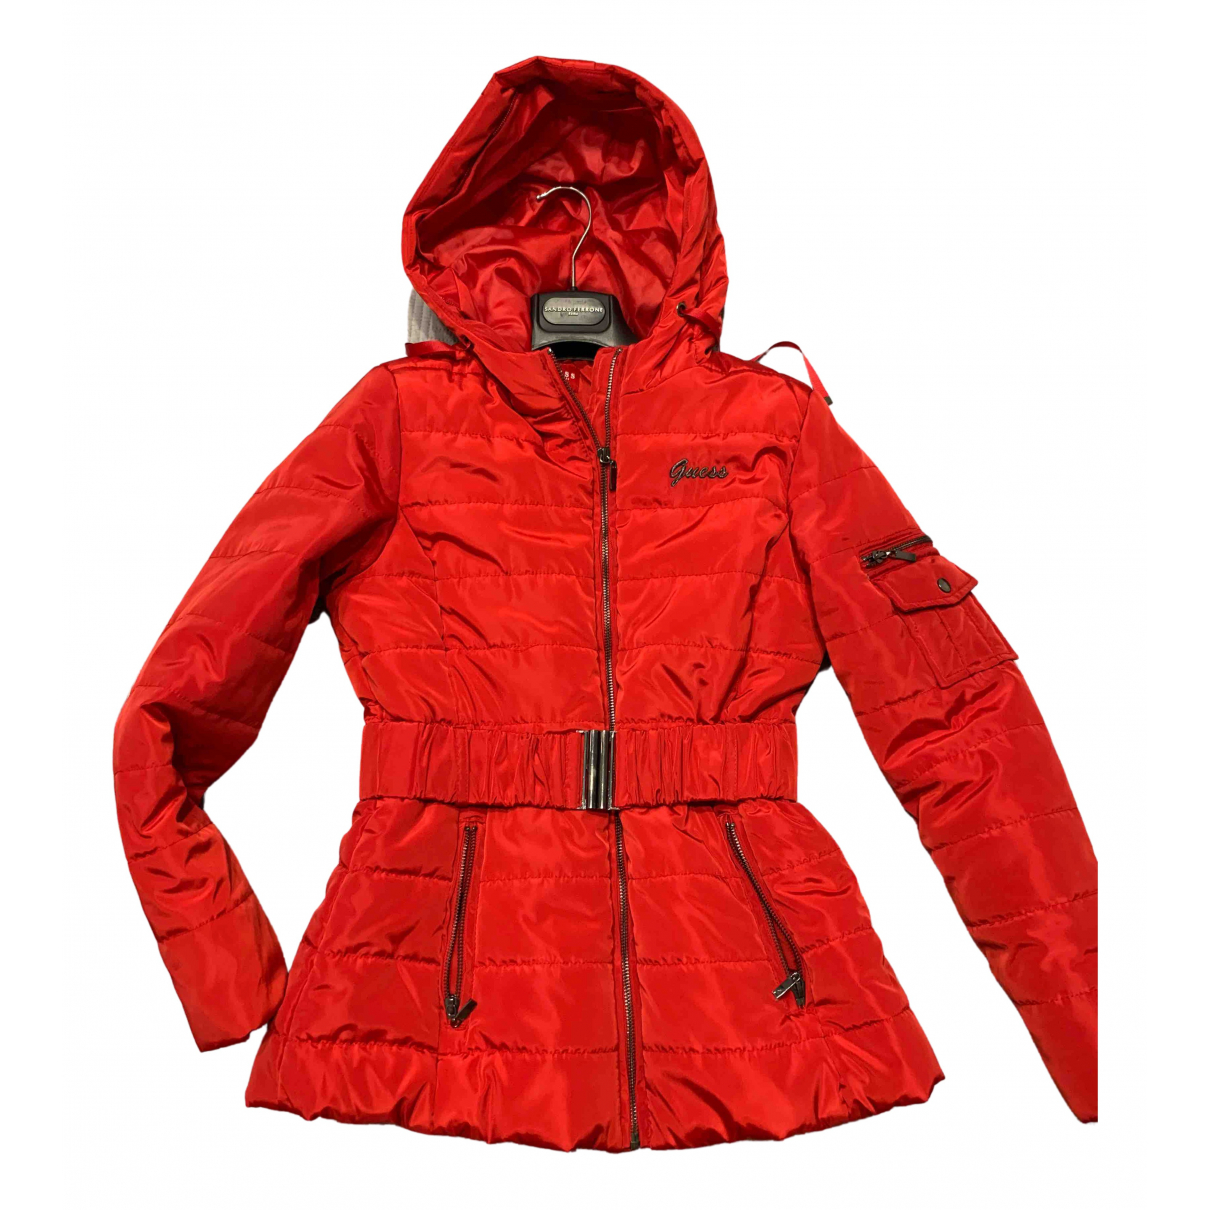 Guess \N Jacke in  Rot Polyester